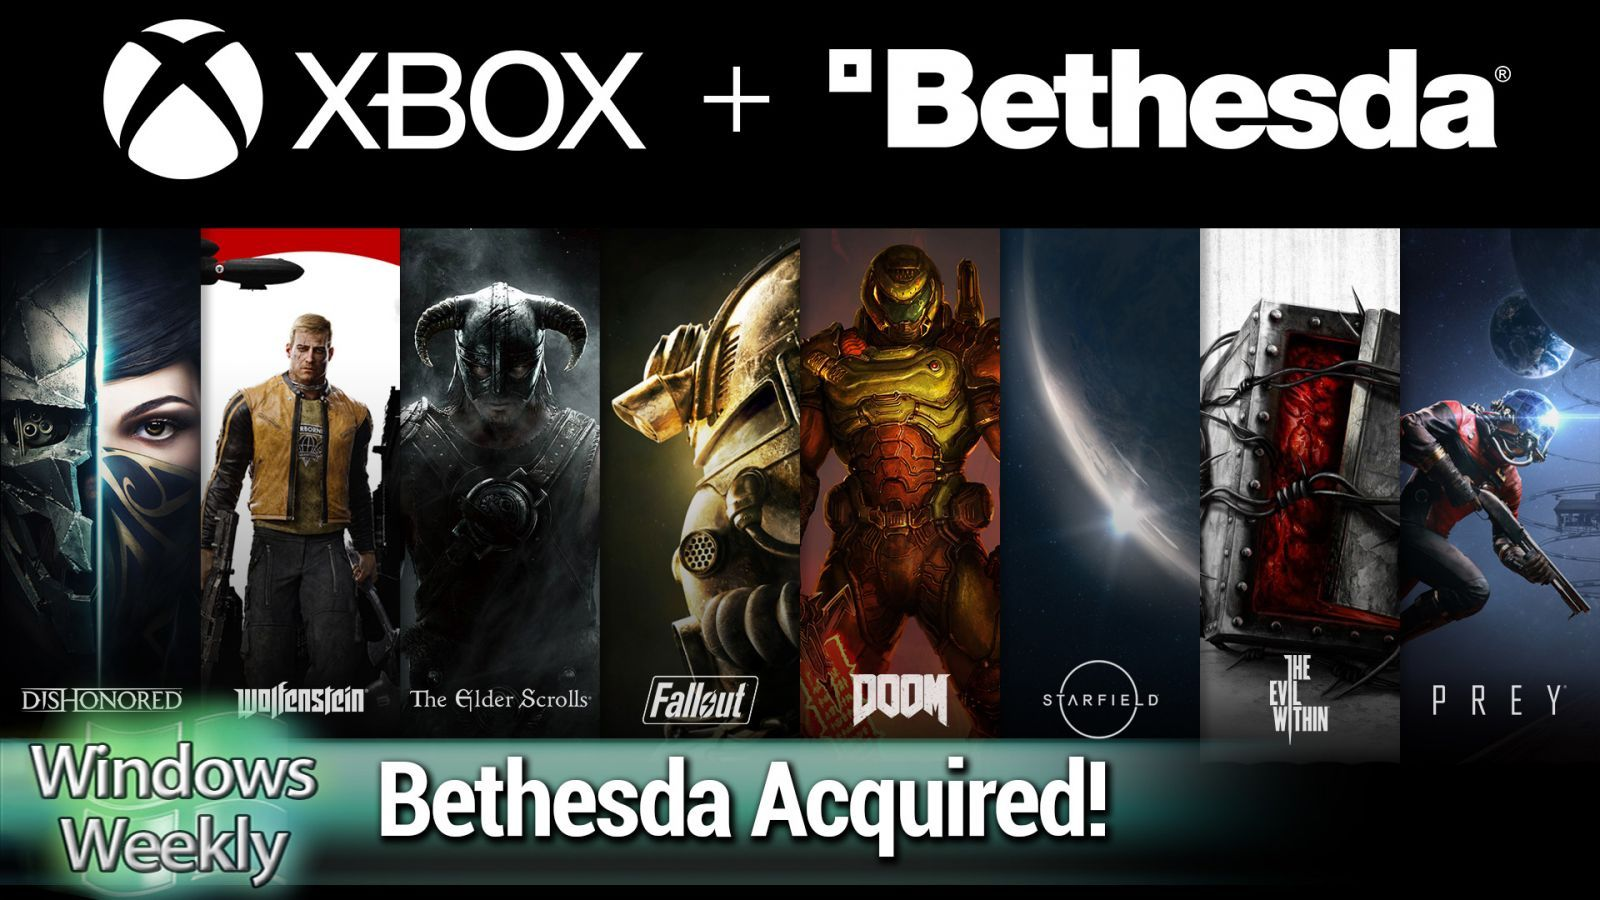 WW 691: Bethesda's Not Just a Town in Maryland - Microsoft Buys Bethesda, Best of Ignite, Xbox Preorder Fail